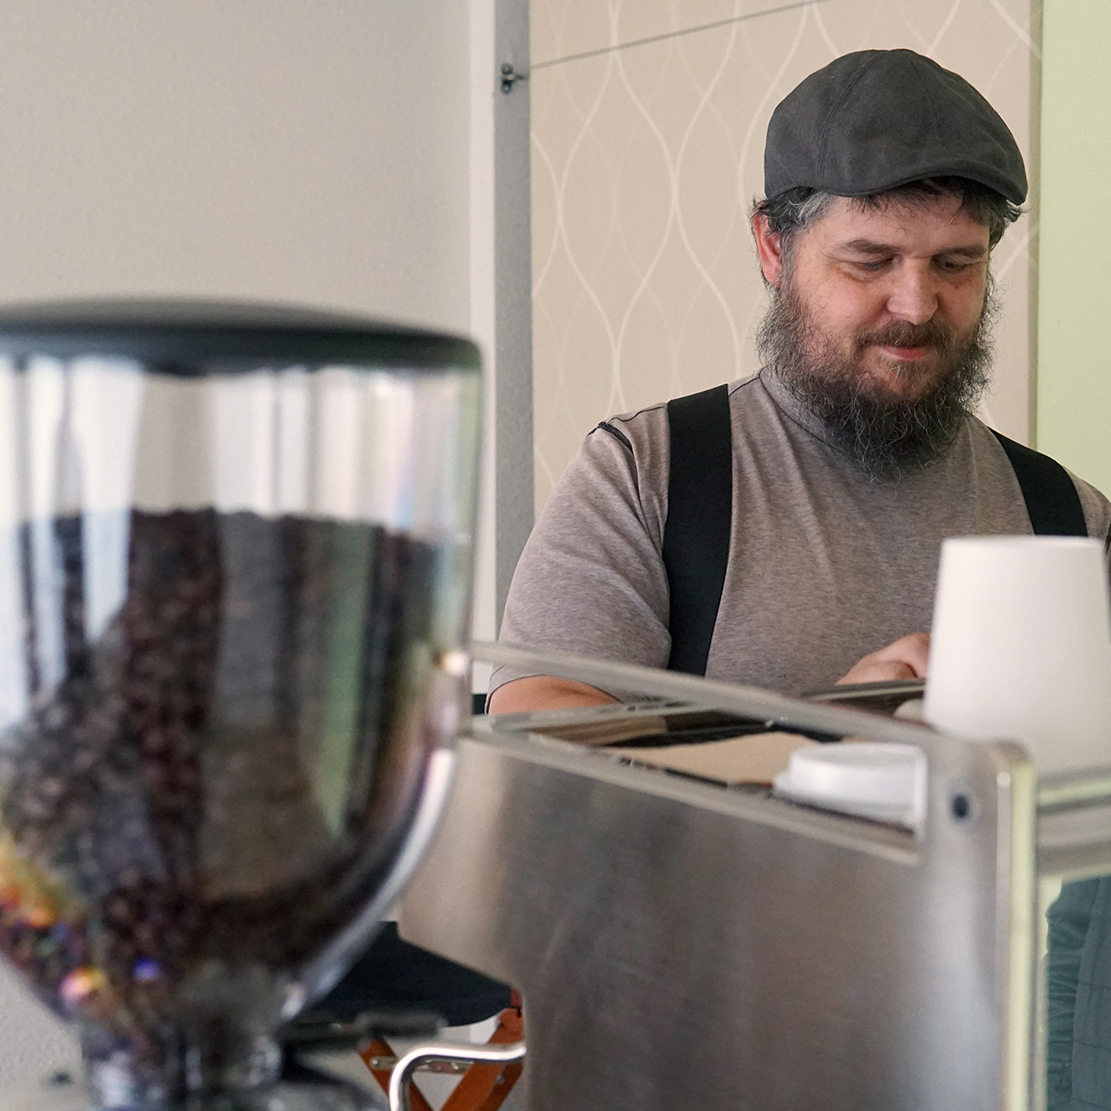 Rocky Butte Coffee Roasters Brings Community to an Underserved Portland Neighborhood